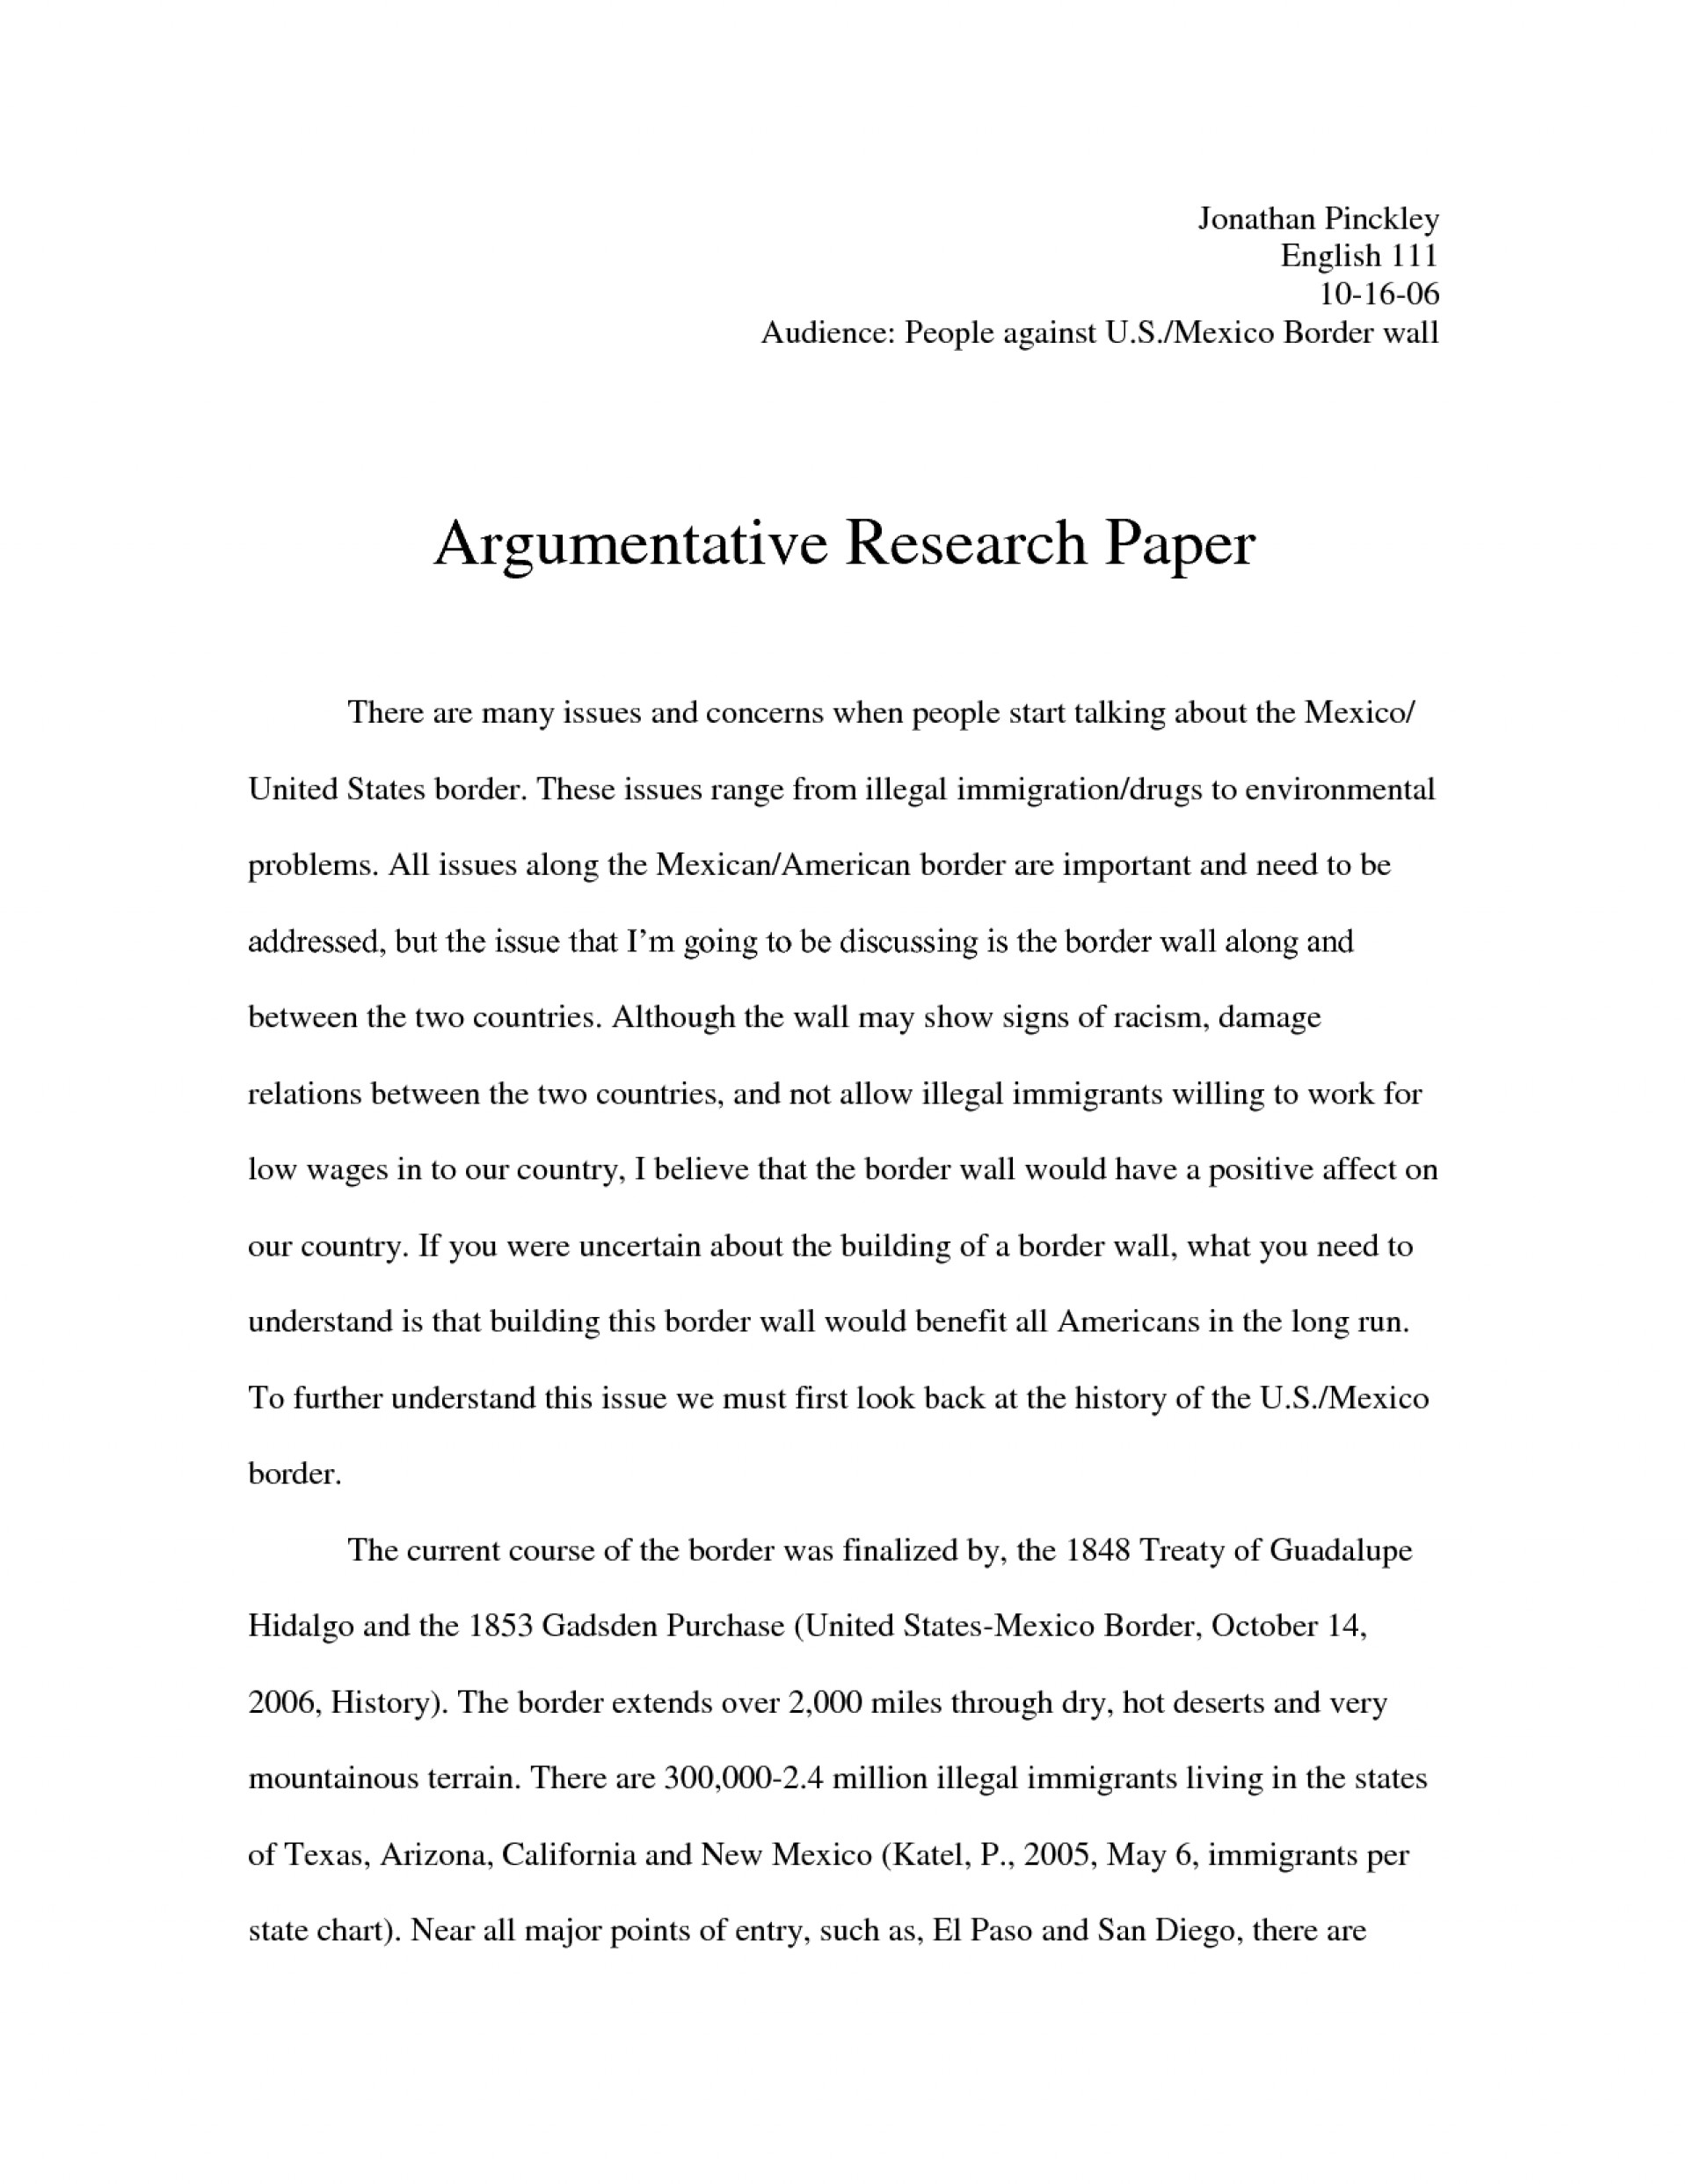 014 Uncategorized Debate20y Argumentative Thesis High School Topics Sentence Starters Outline Worksheet Structure20 For Research Rare A Paper Medical 1920